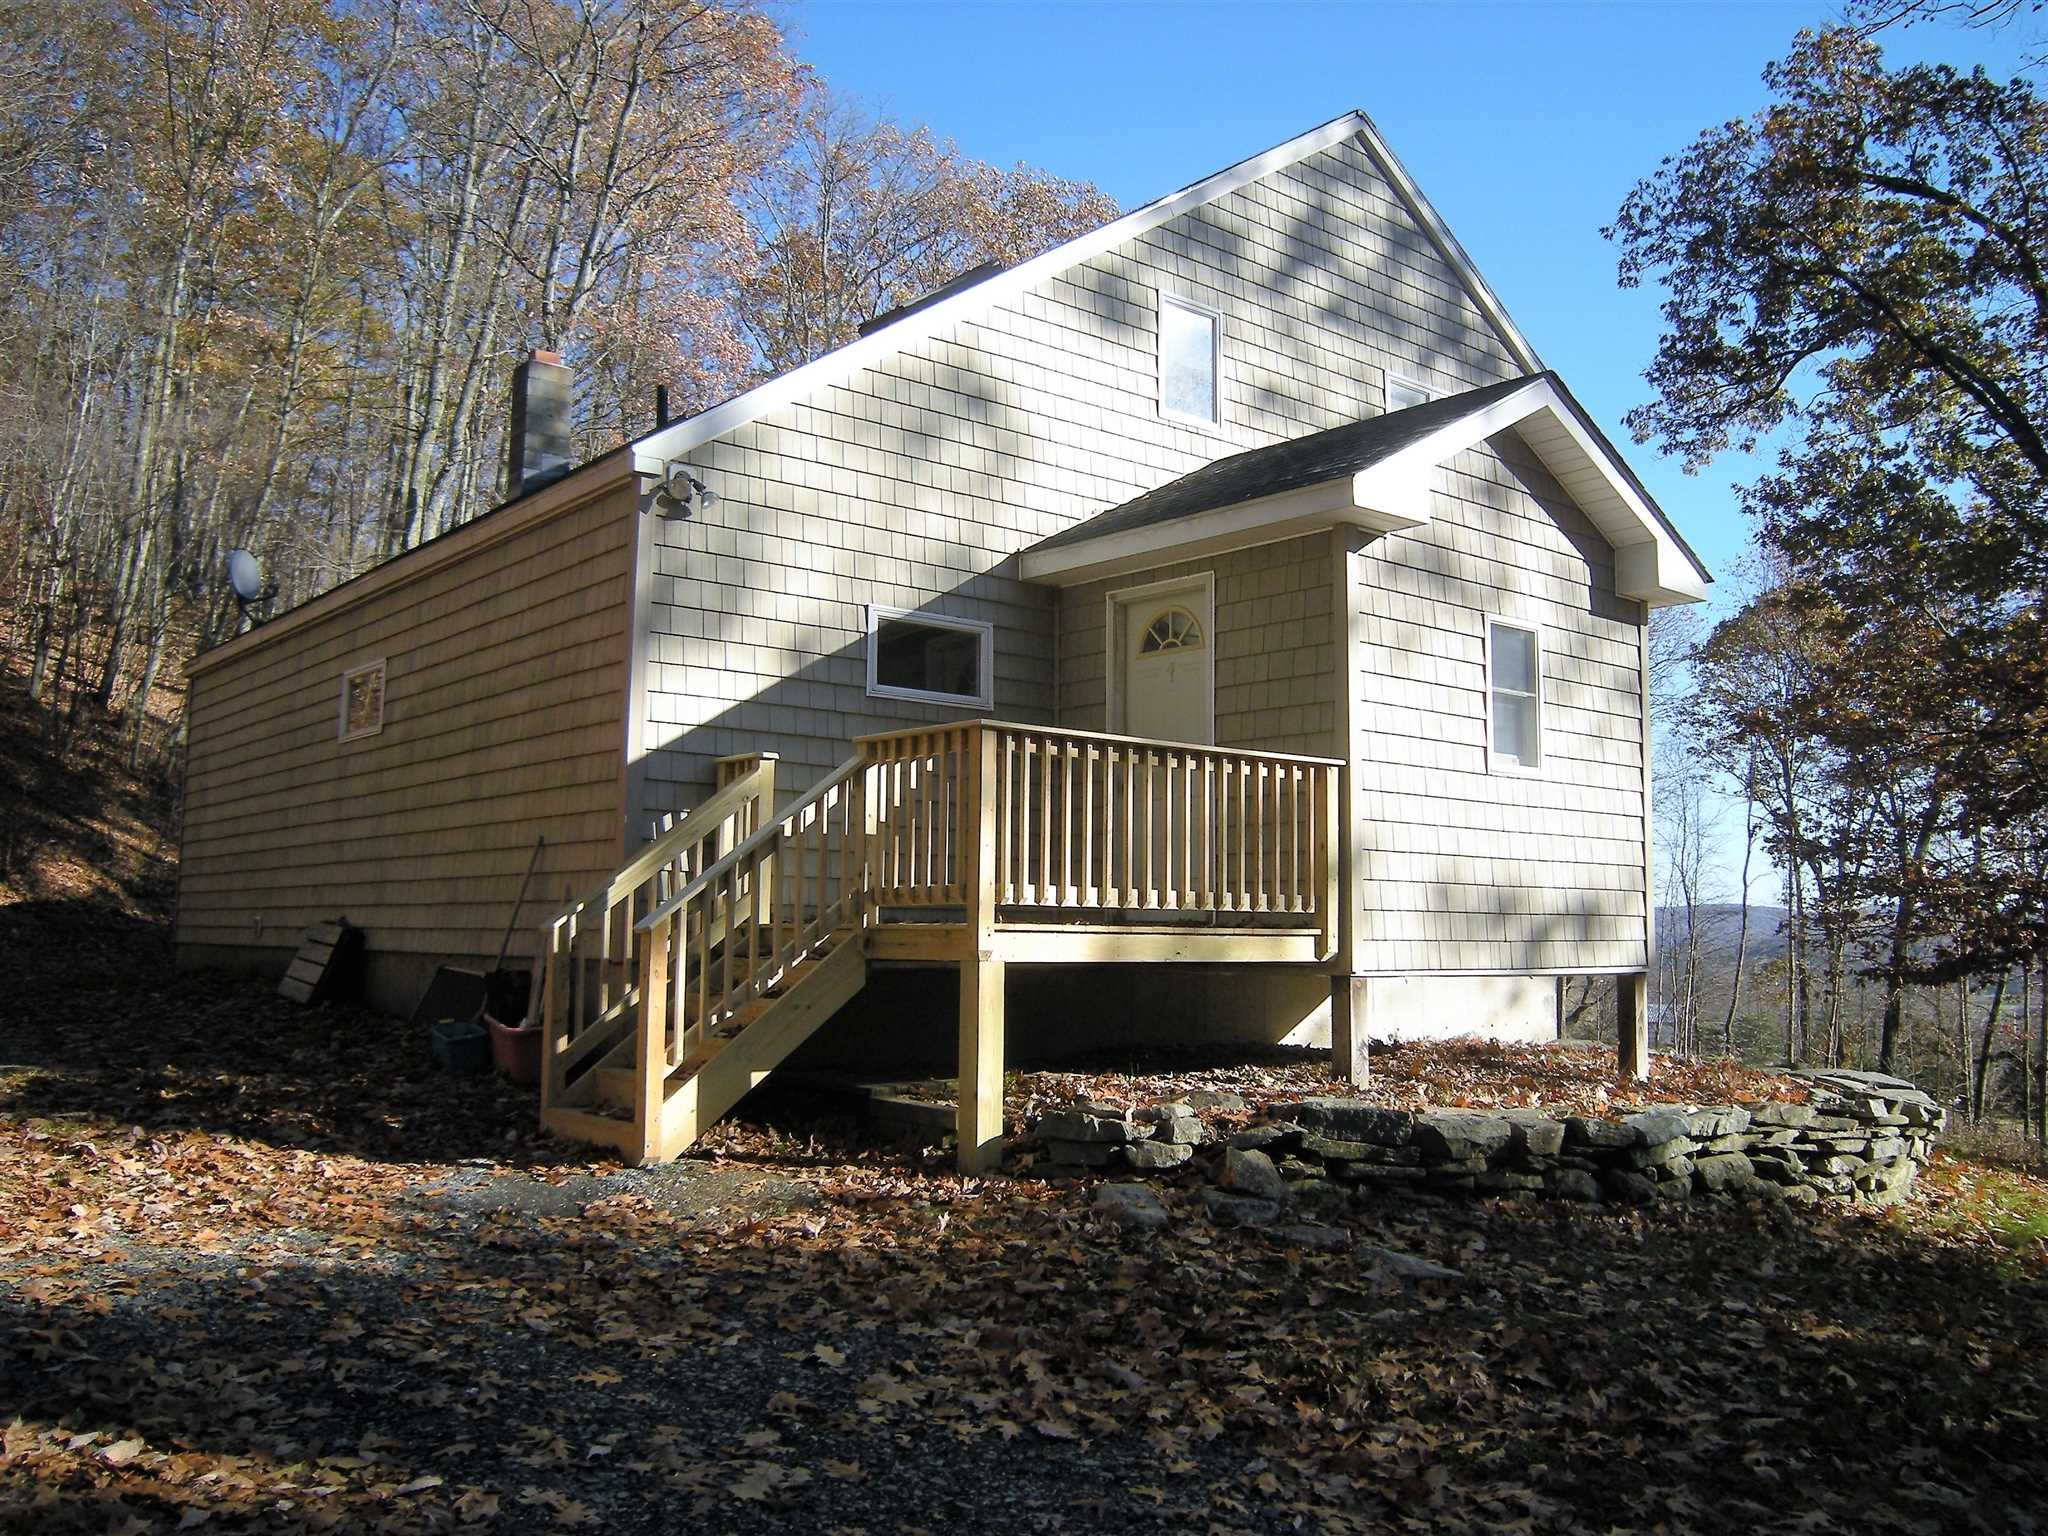 Single Family Home for Sale at 629 HALL HILL Road 629 HALL HILL Road Ancram, New York 12567 United States